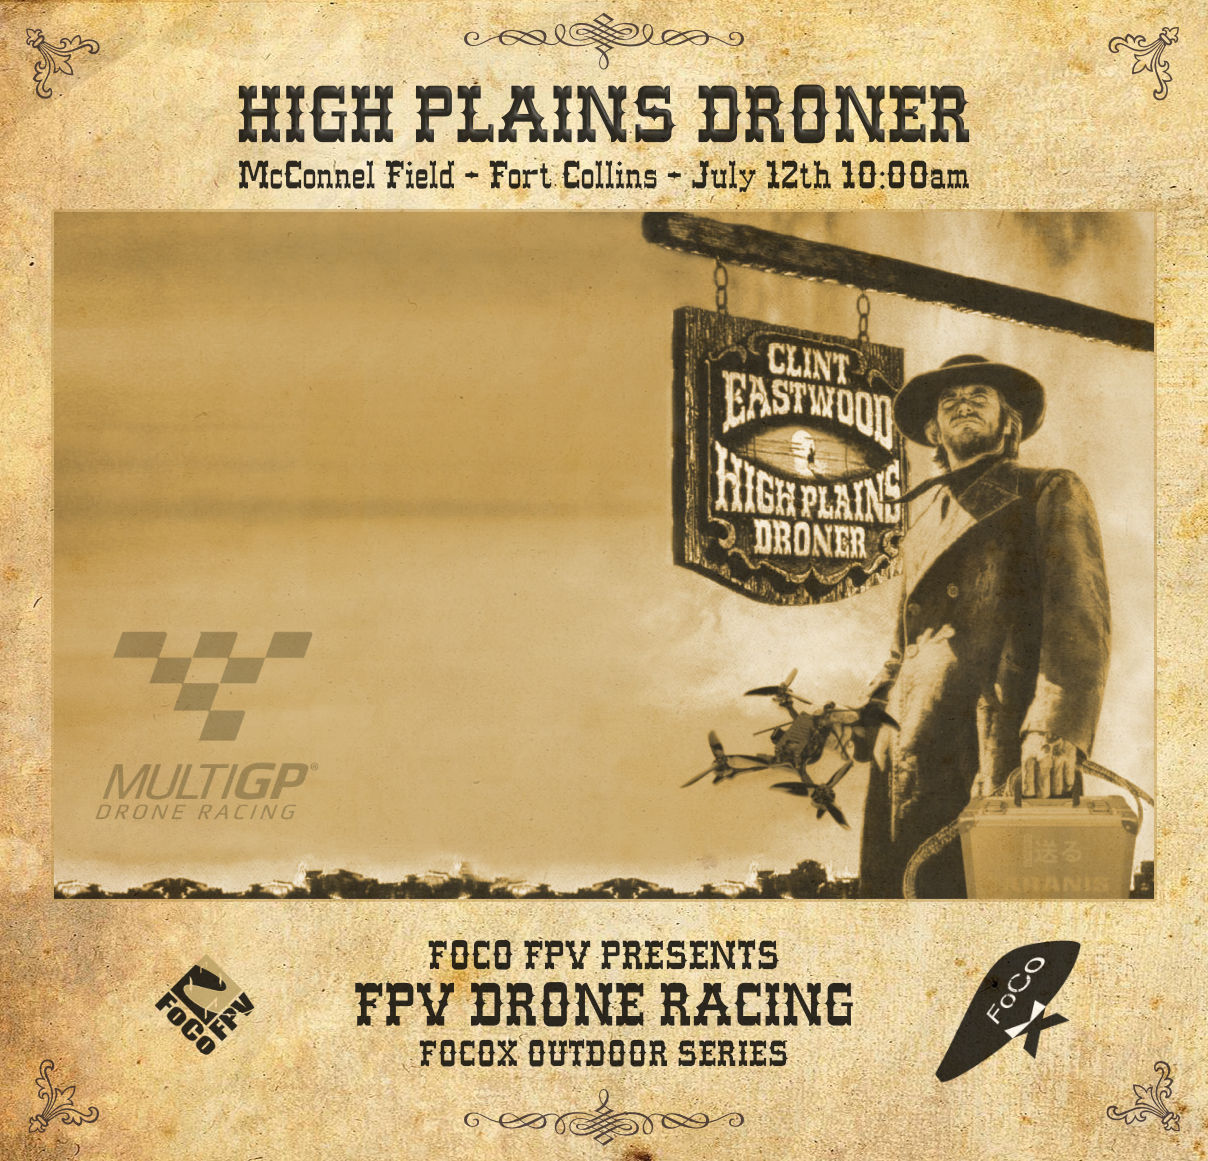 High Plains Droner